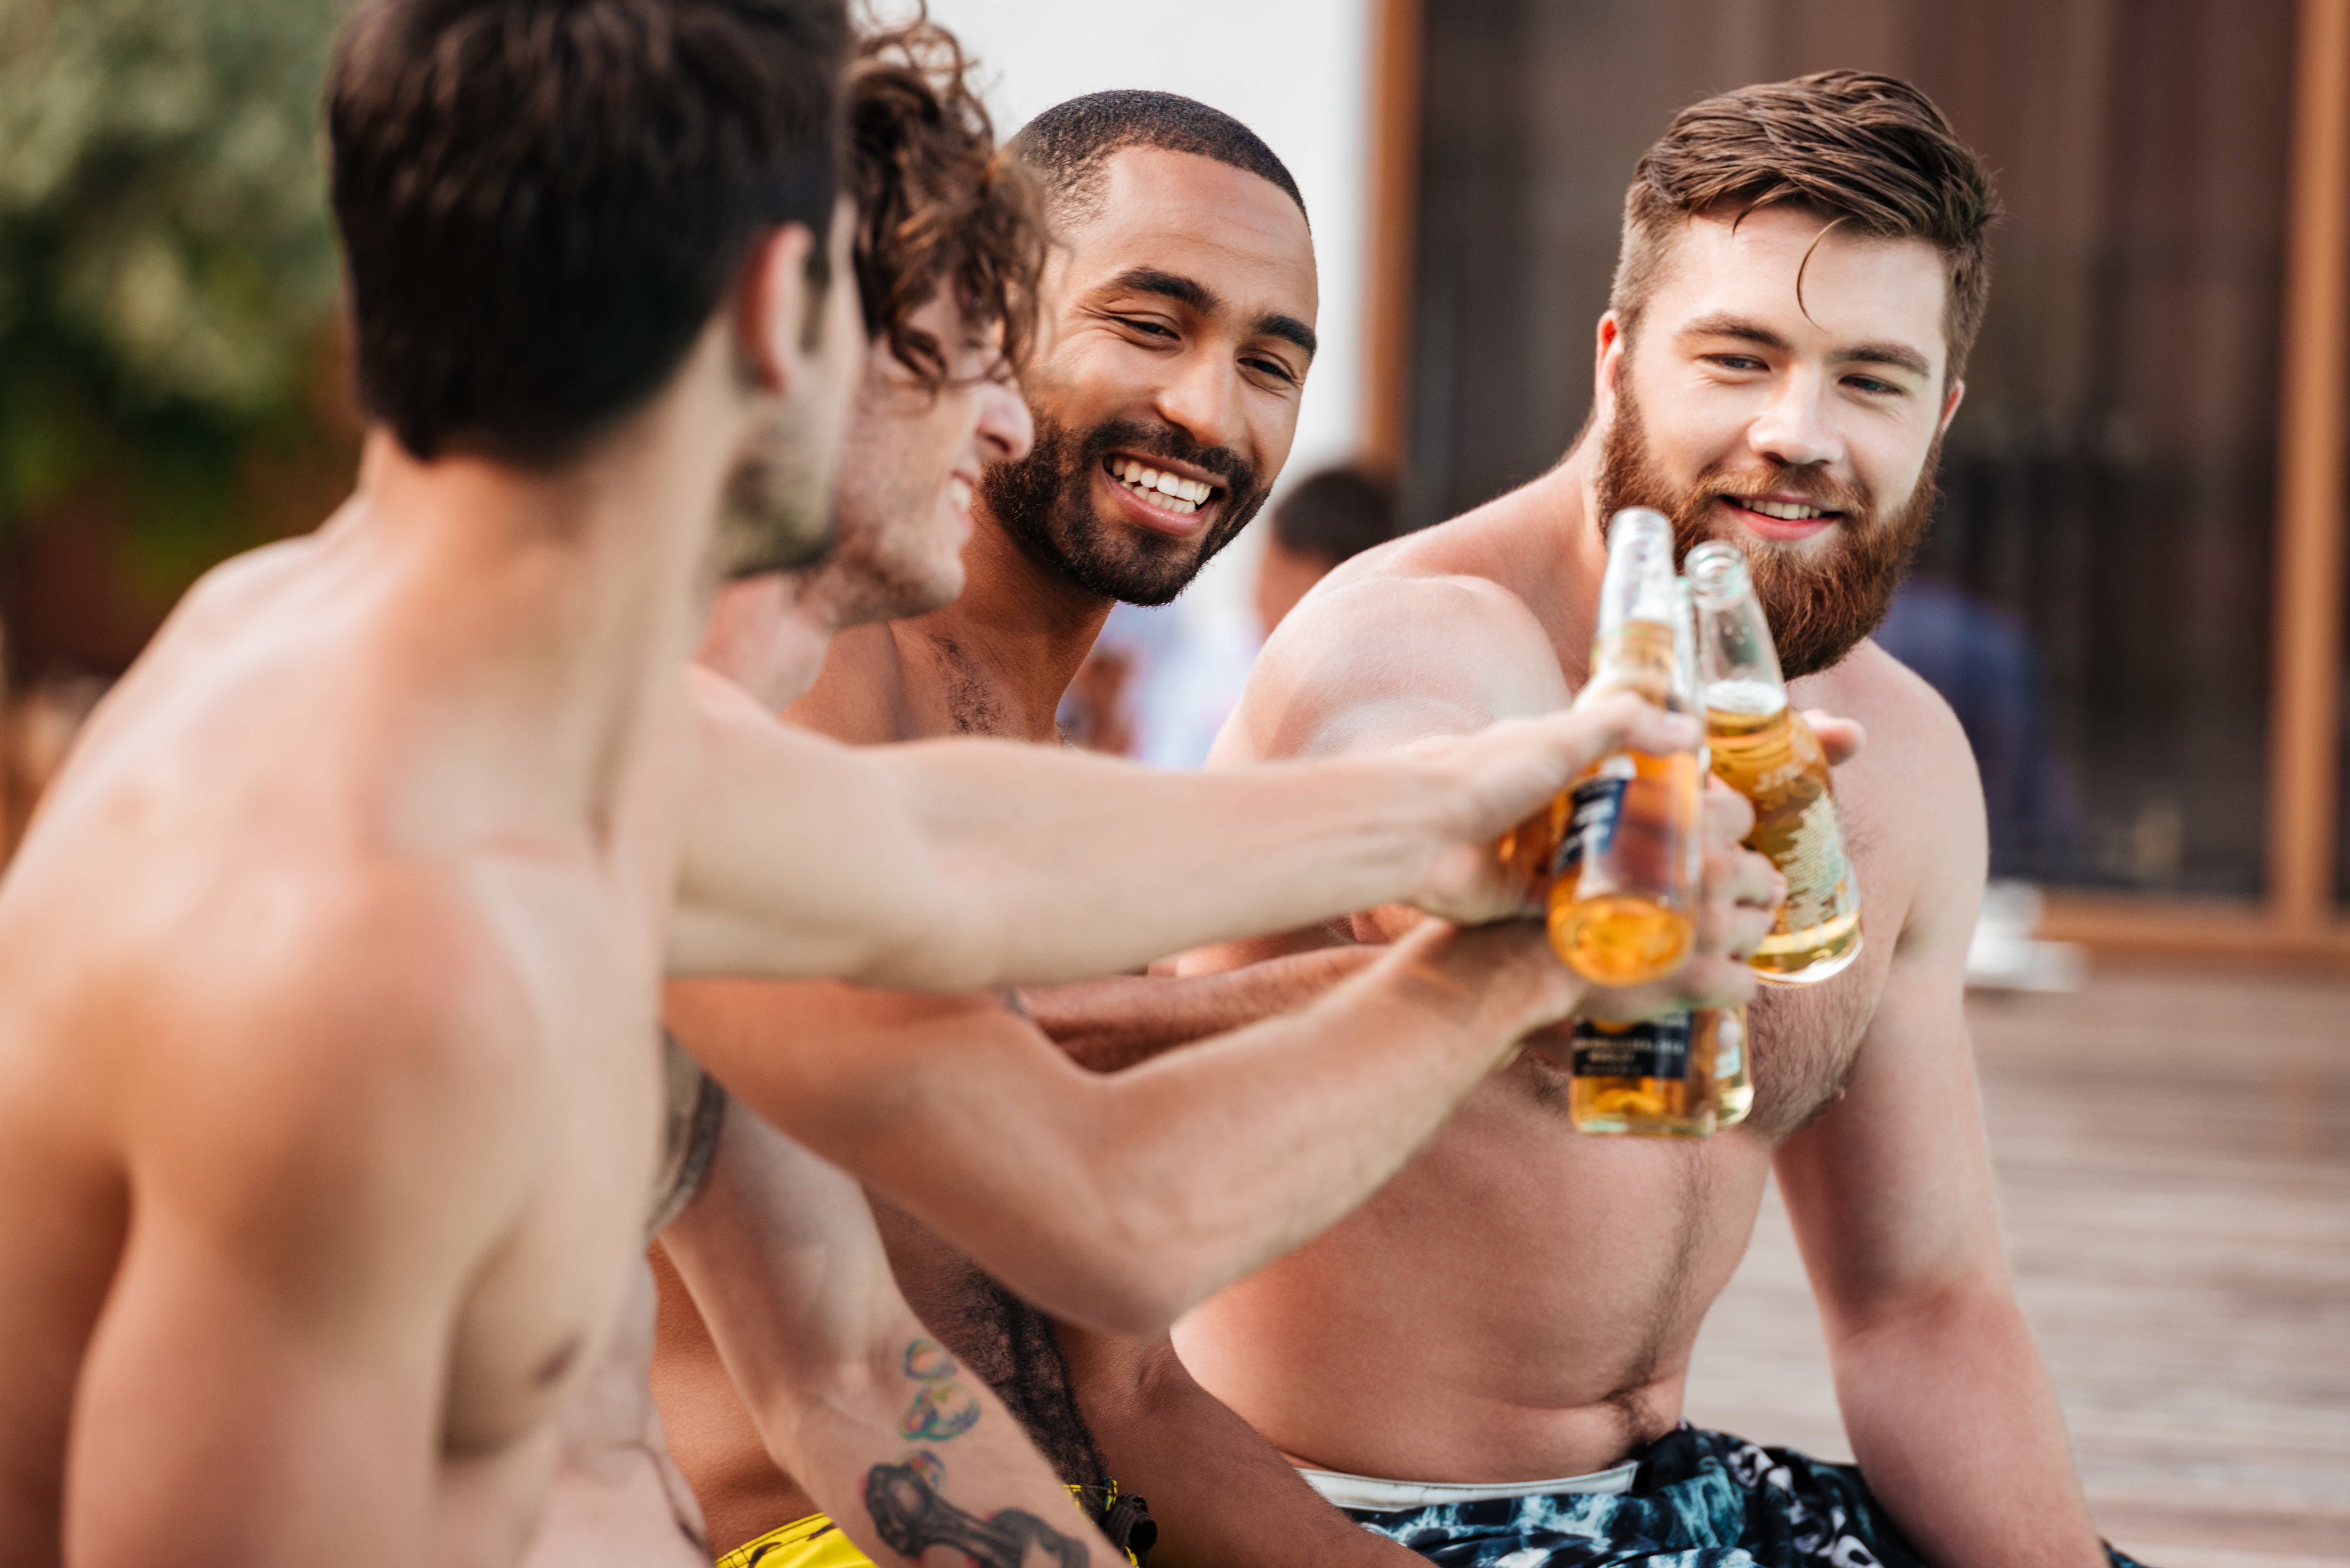 RESEARCH SAYS BINGE DRINKING MAY CAUSE CARDIOVASCULAR DISEASE AND STROKE